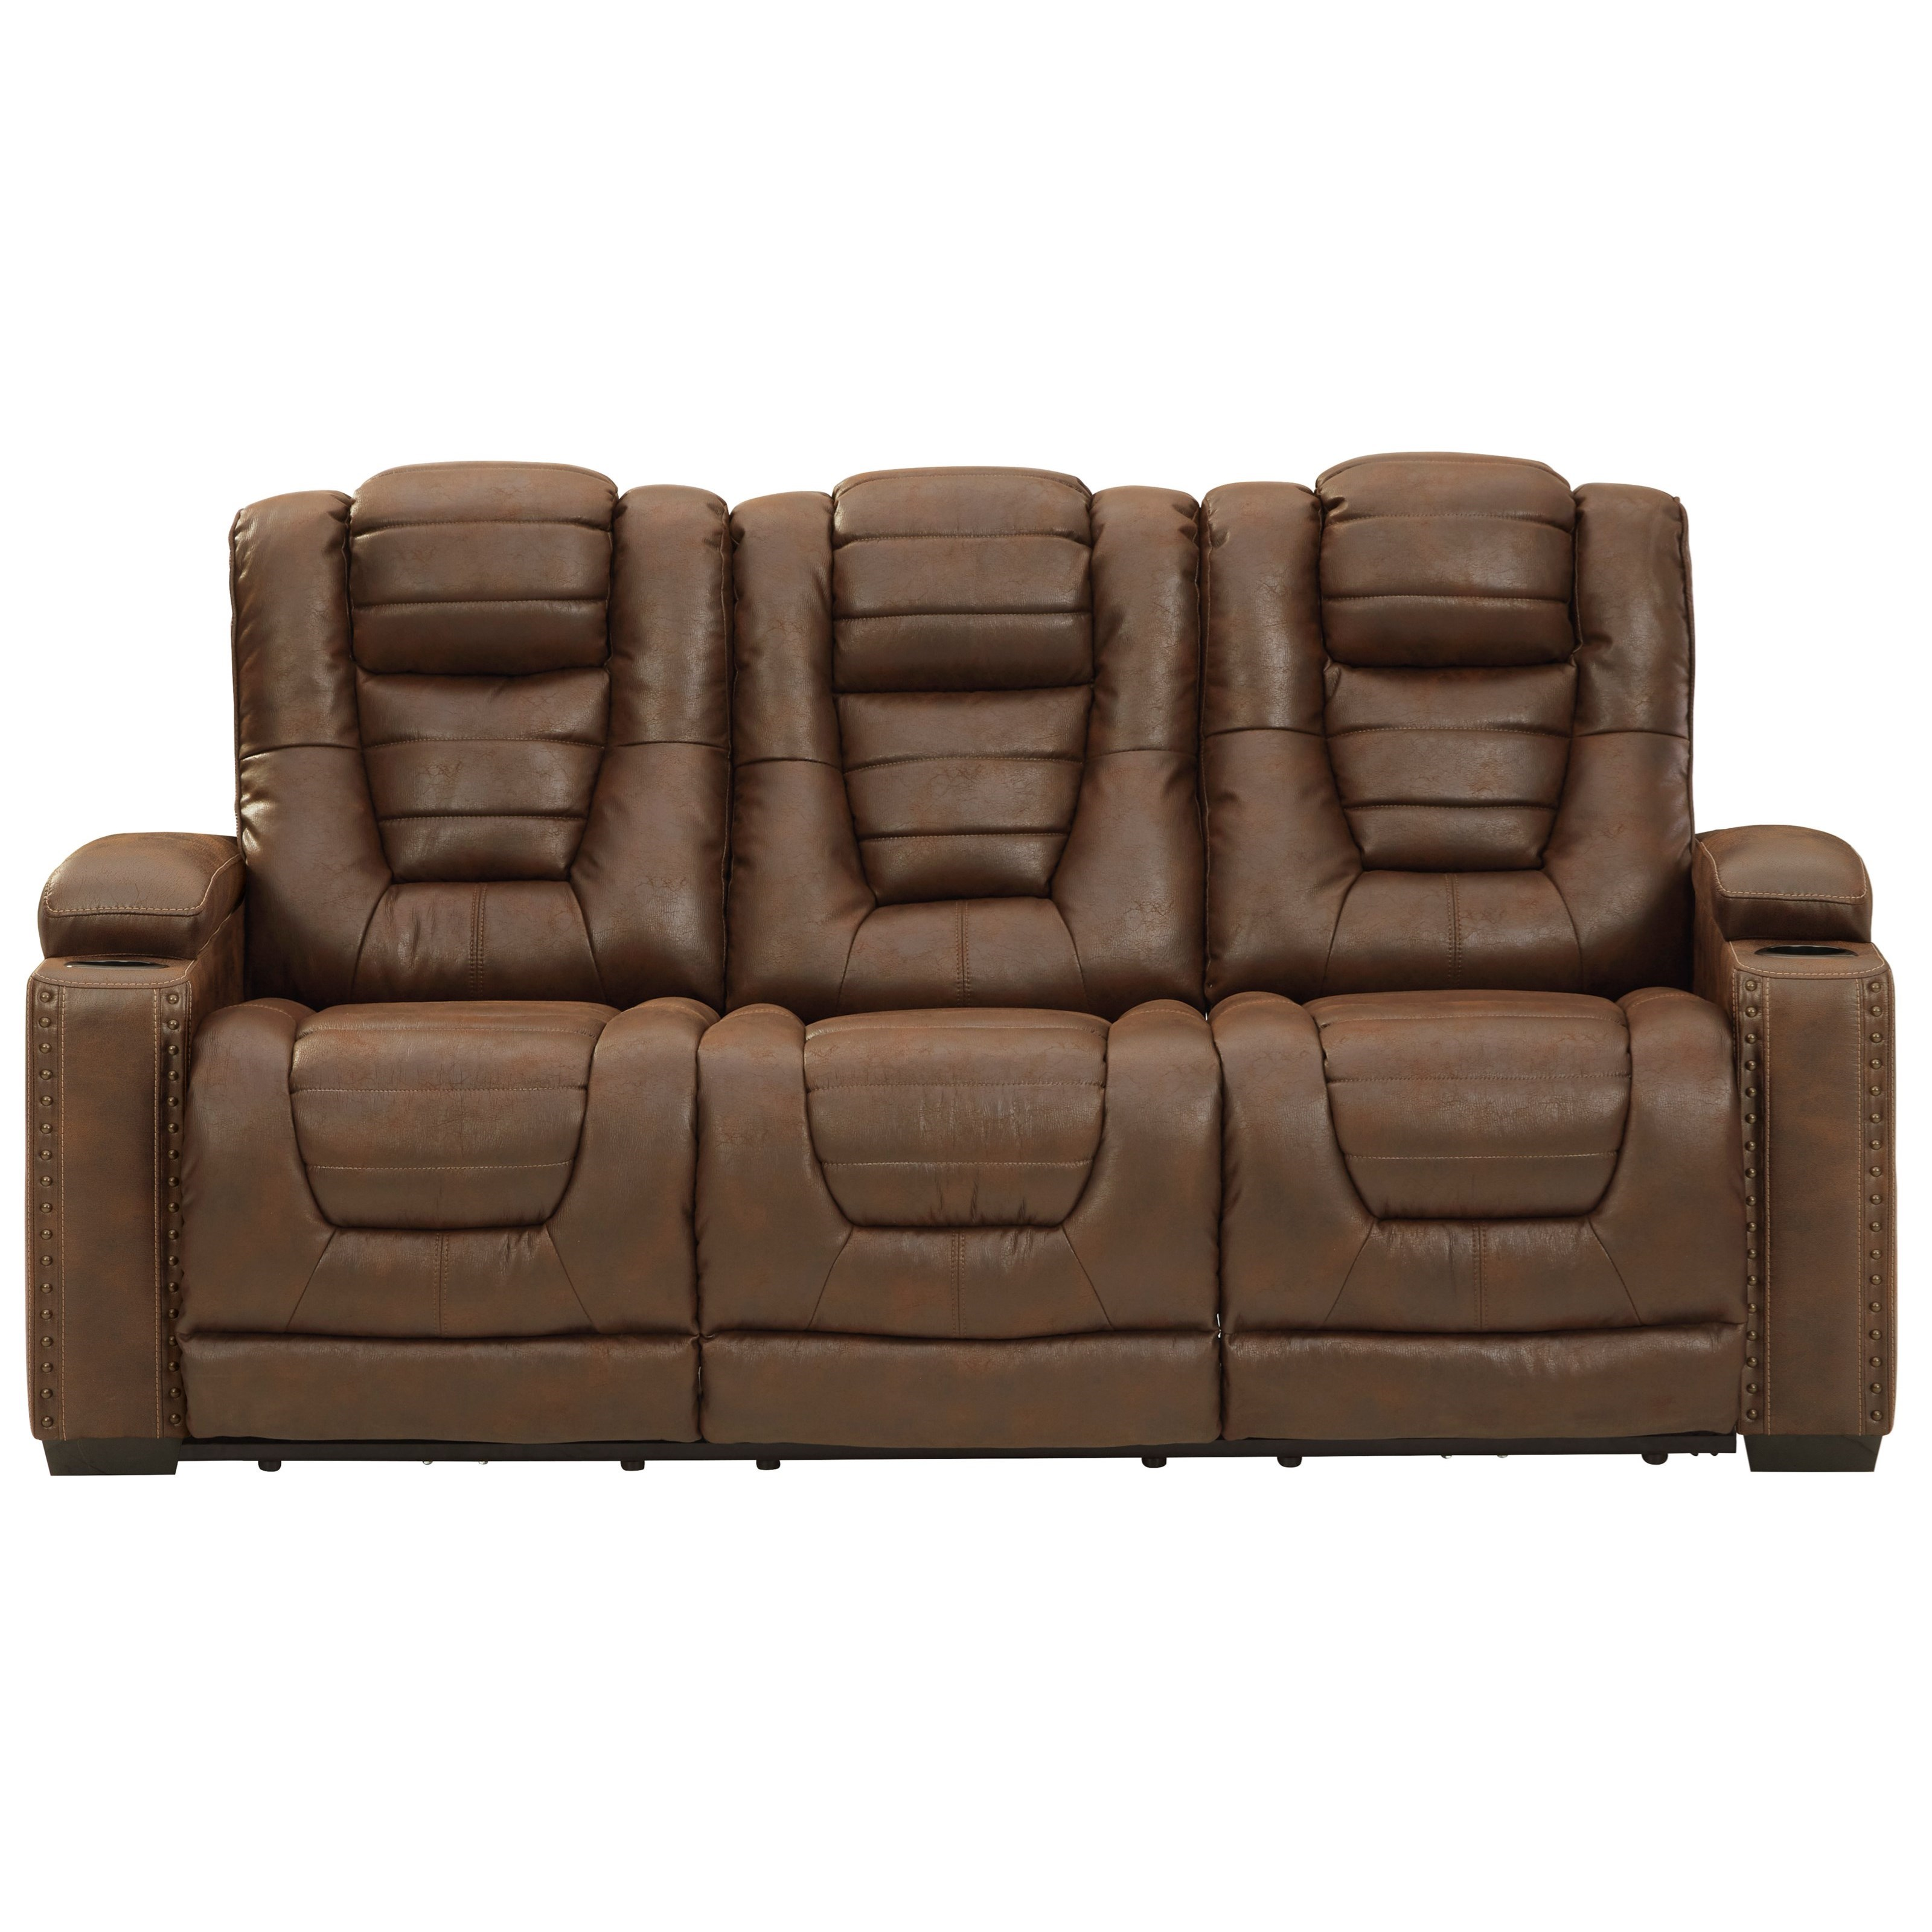 Power Reclining Sofa w/ Adjustable Headrests